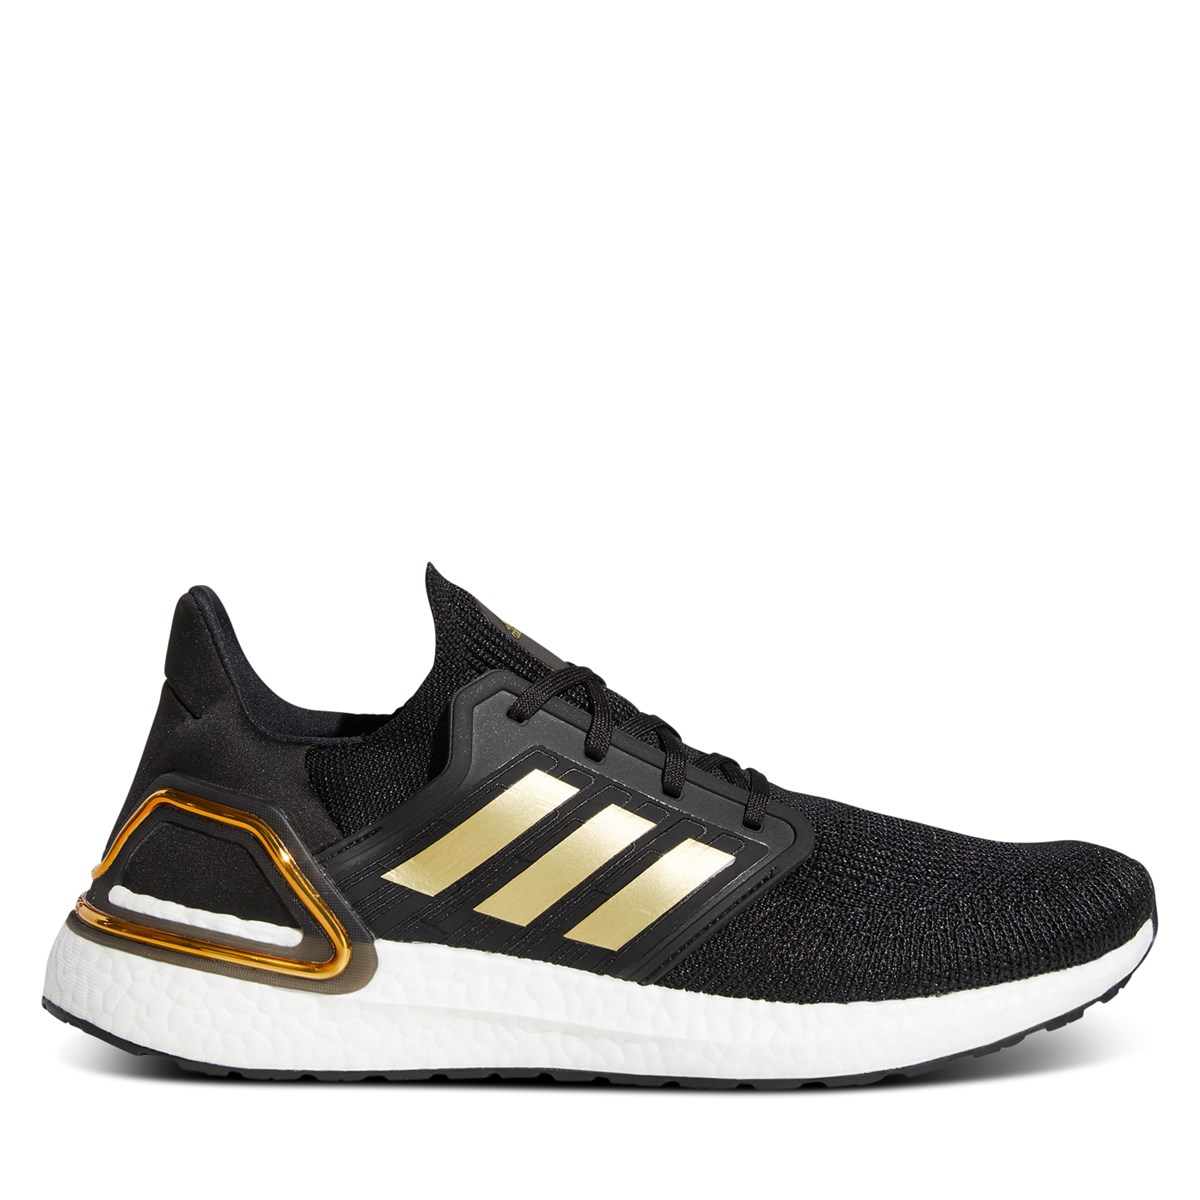 Men's Ultraboost 20 Sneakers in Black